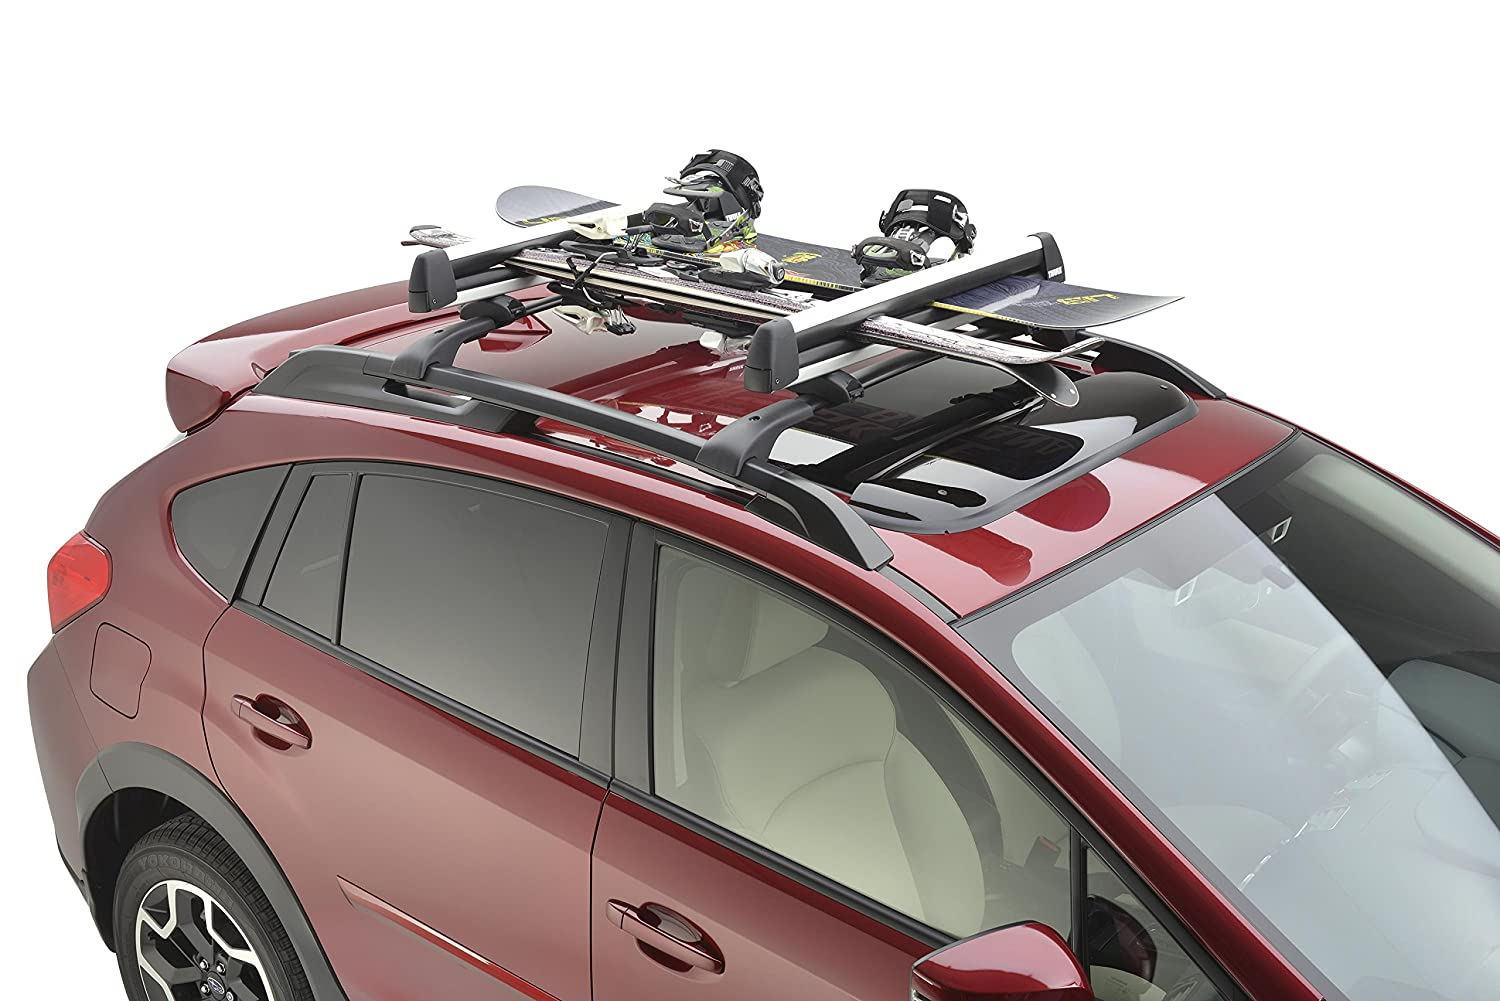 SUBARU Genuine SOA567S010 Ski and Snowboard Carrier